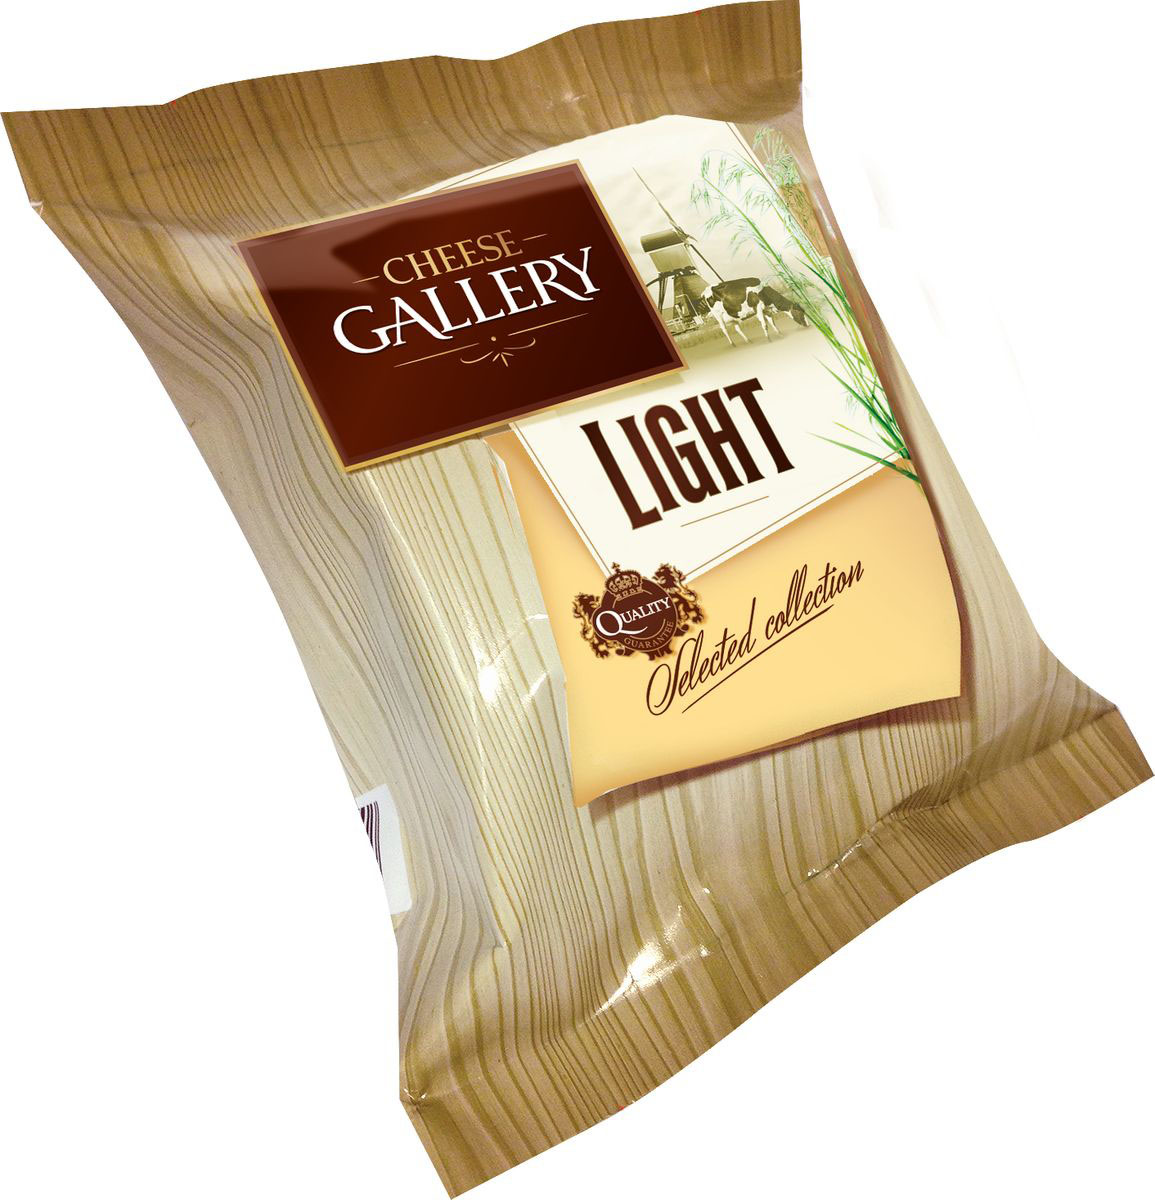 Cheese Gallery Сыр Лайт, 20%, 250 г cheese gallery сыр песто томато с приправой 45